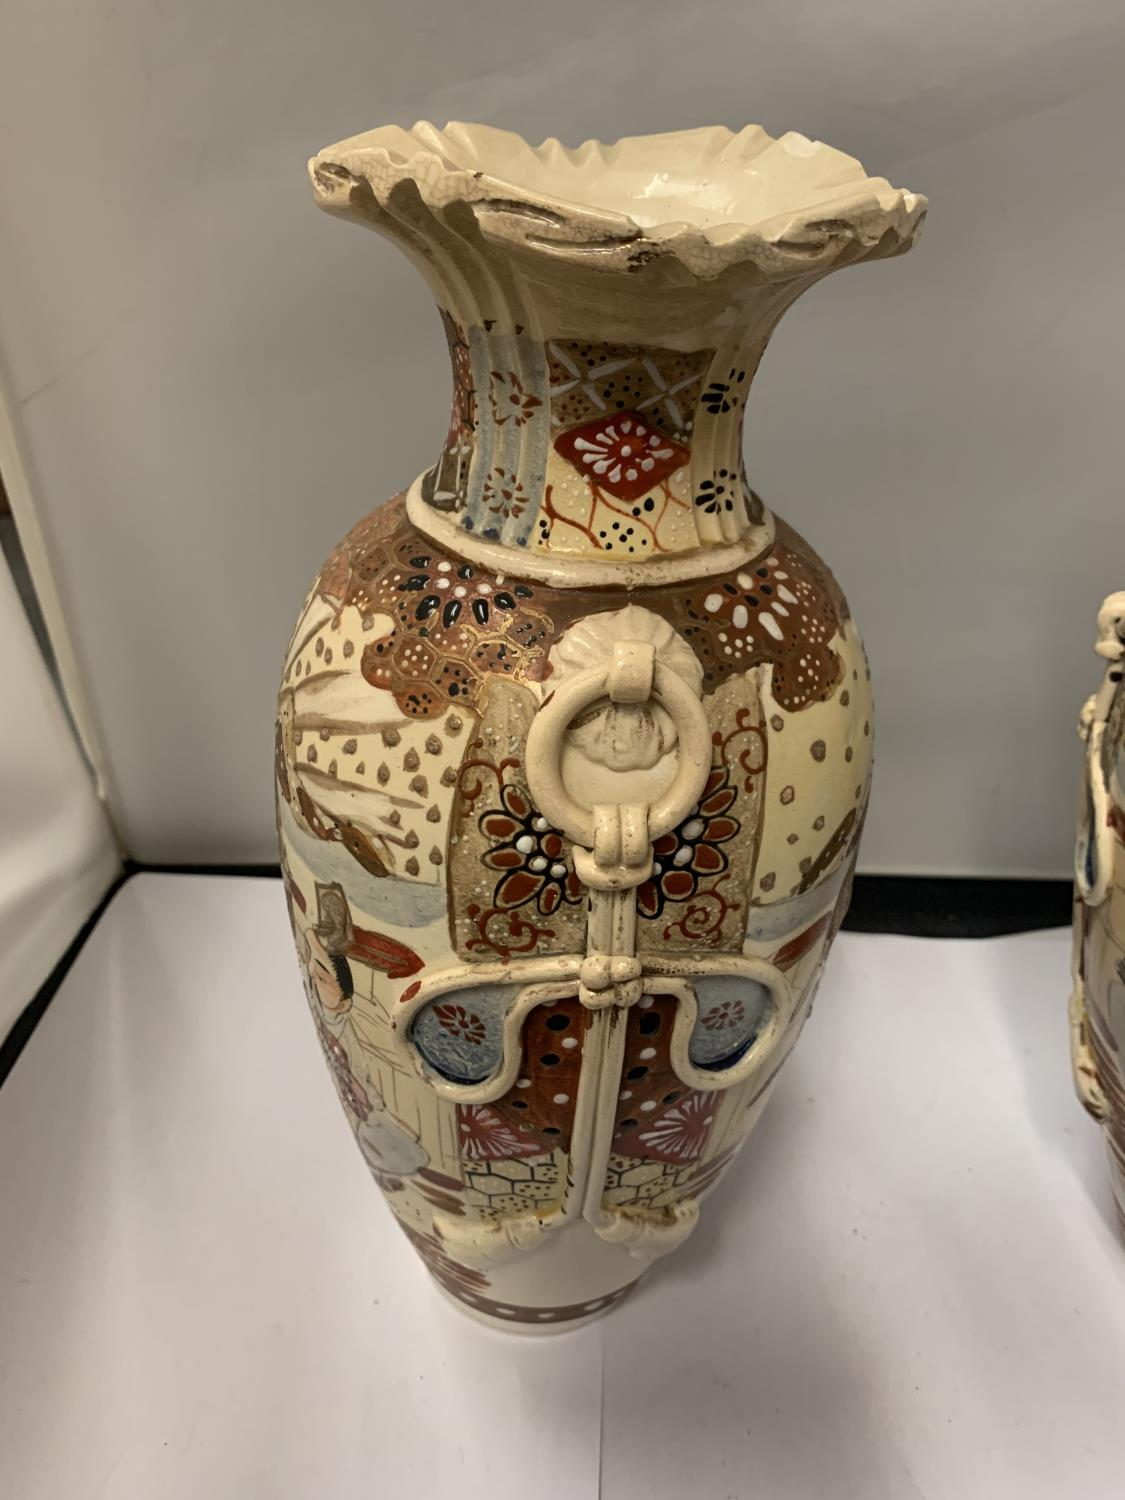 TWO HIGHLY DECORATIVE SATSUMA STYLE ORIENTAL VASES, HEIGHT 32CM, NUMBER '31' TO BASE - Image 2 of 3